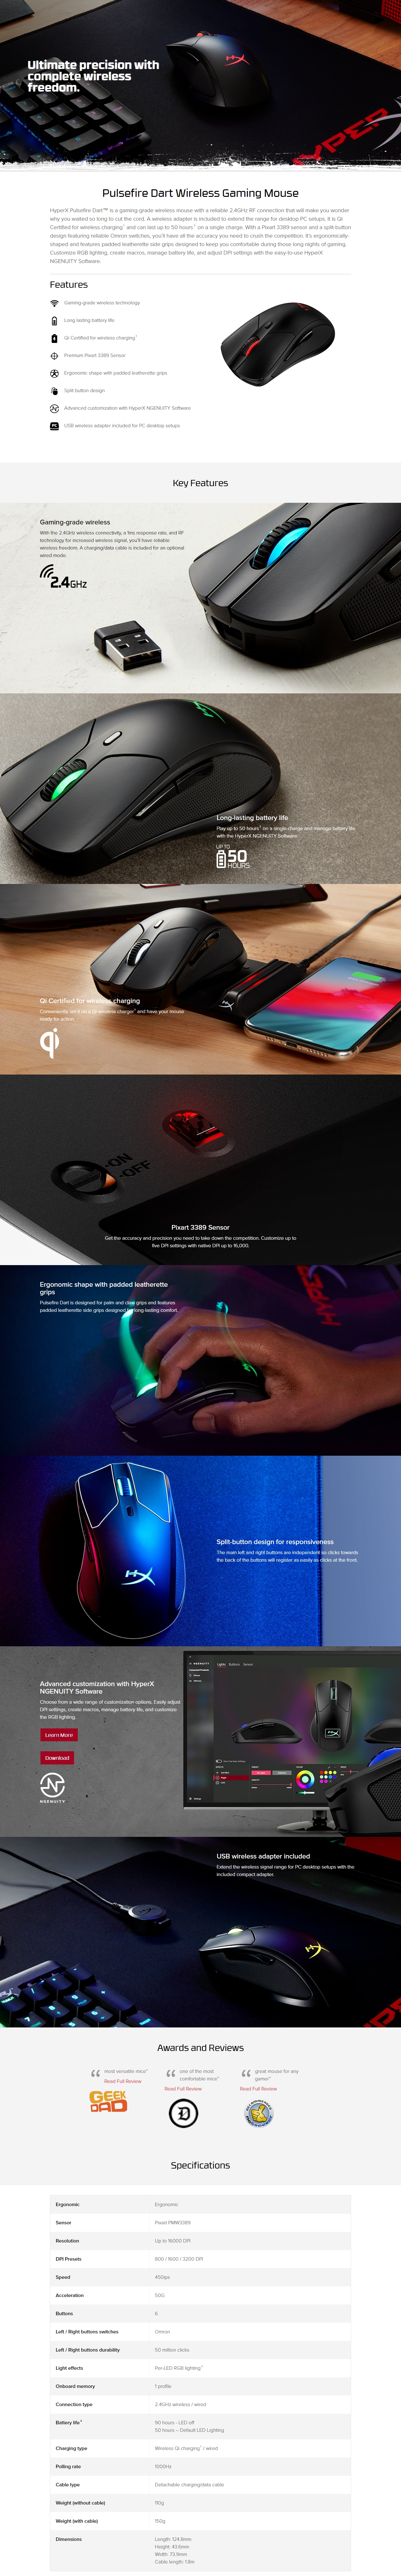 A large marketing image providing additional information about the product Kingston Pulsefire Dart Qi Wireless Gaming Mouse - Additional alt info not provided